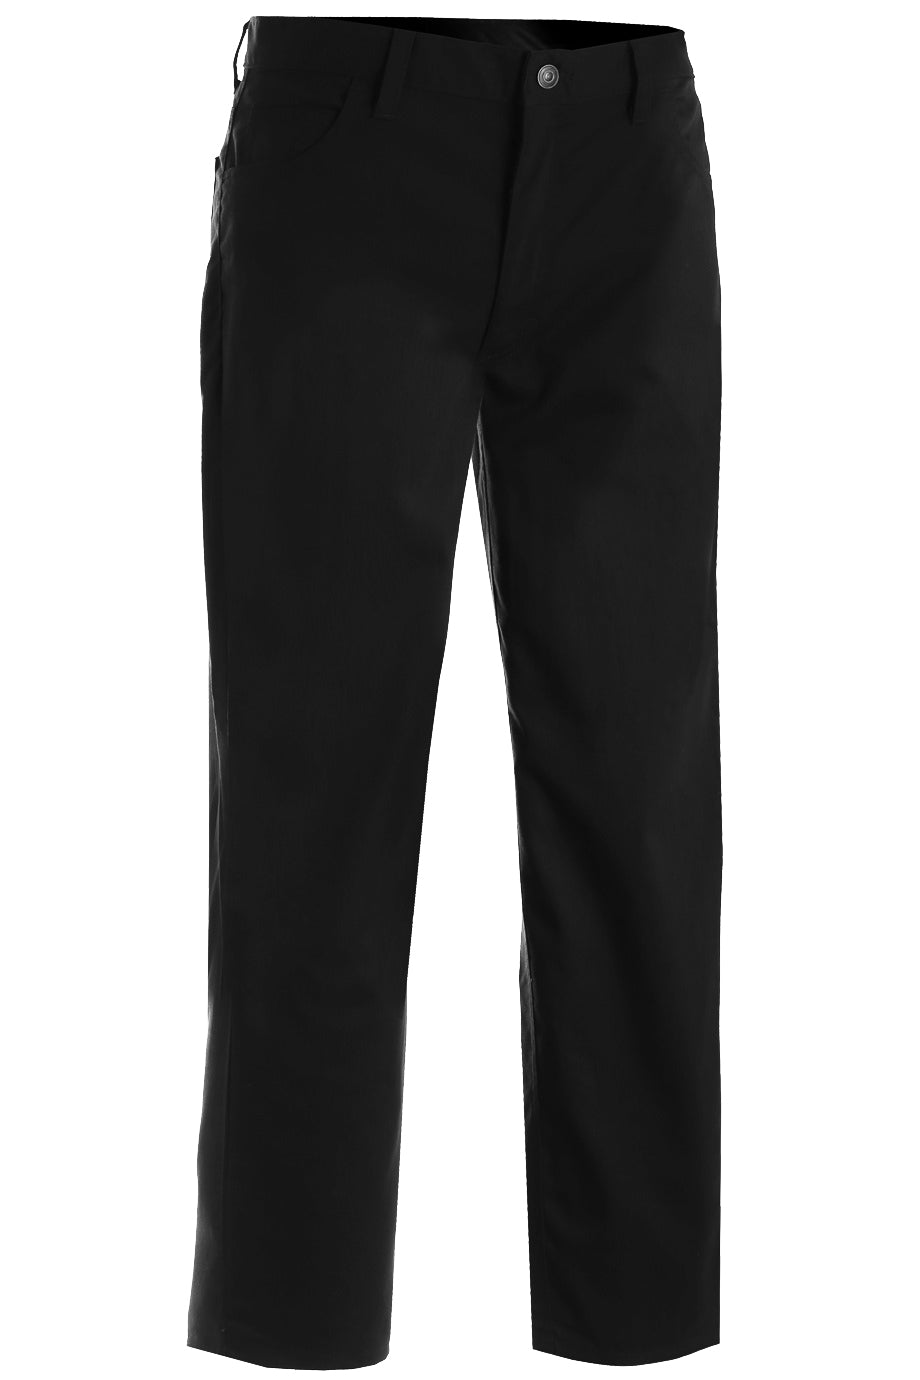 Edwards Mens Rugged Comfort Flat Front Pant - Black